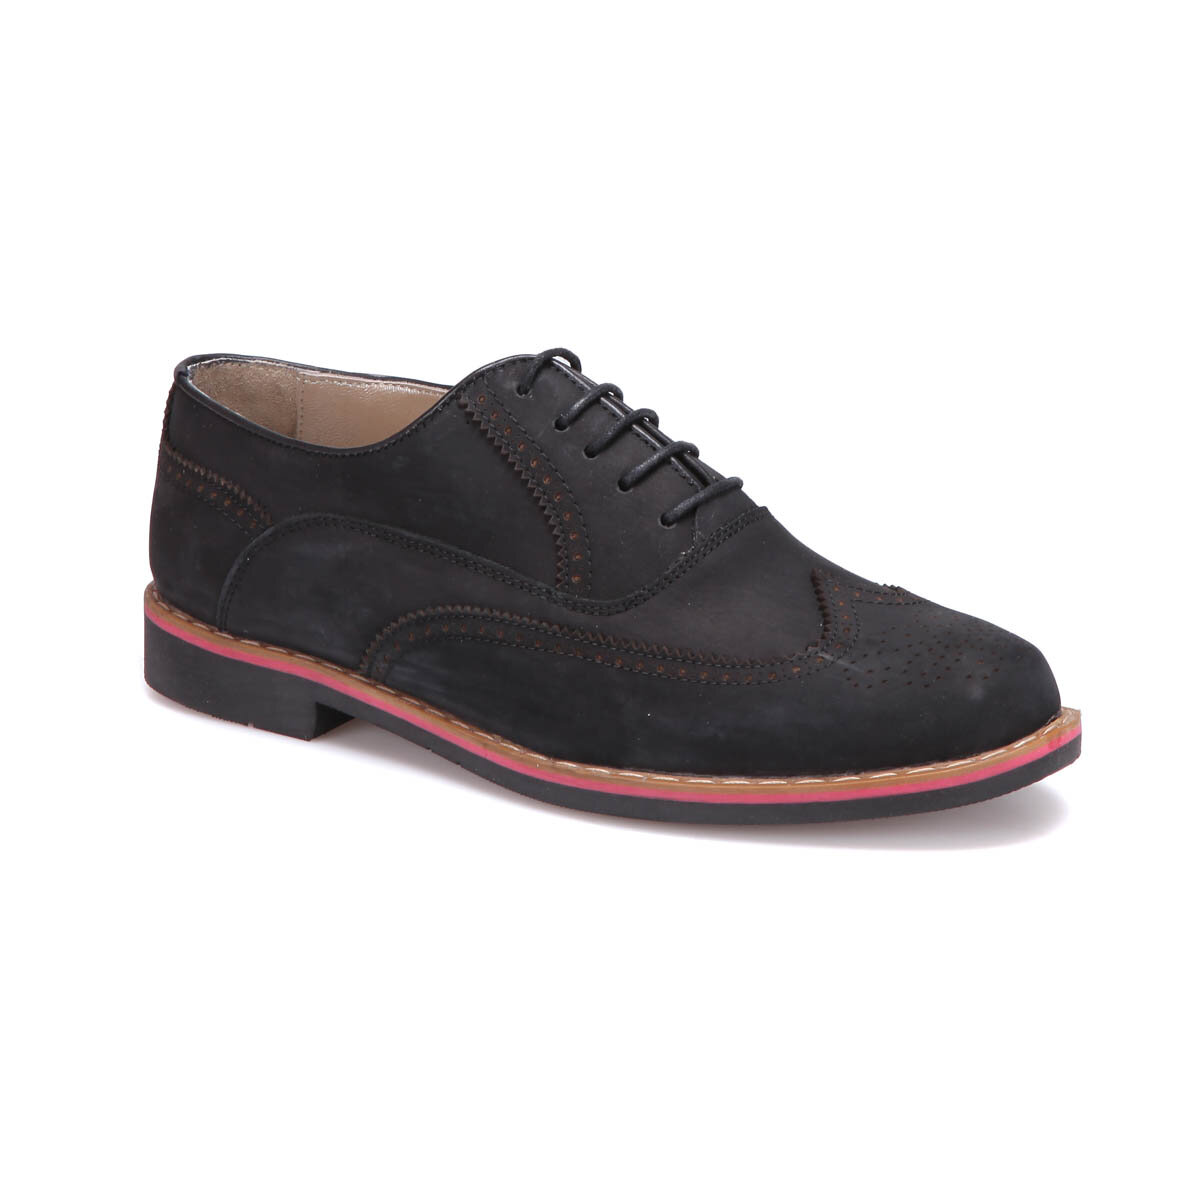 FLO PRG-6 M 6683 Black Male Modern Shoes Garamond